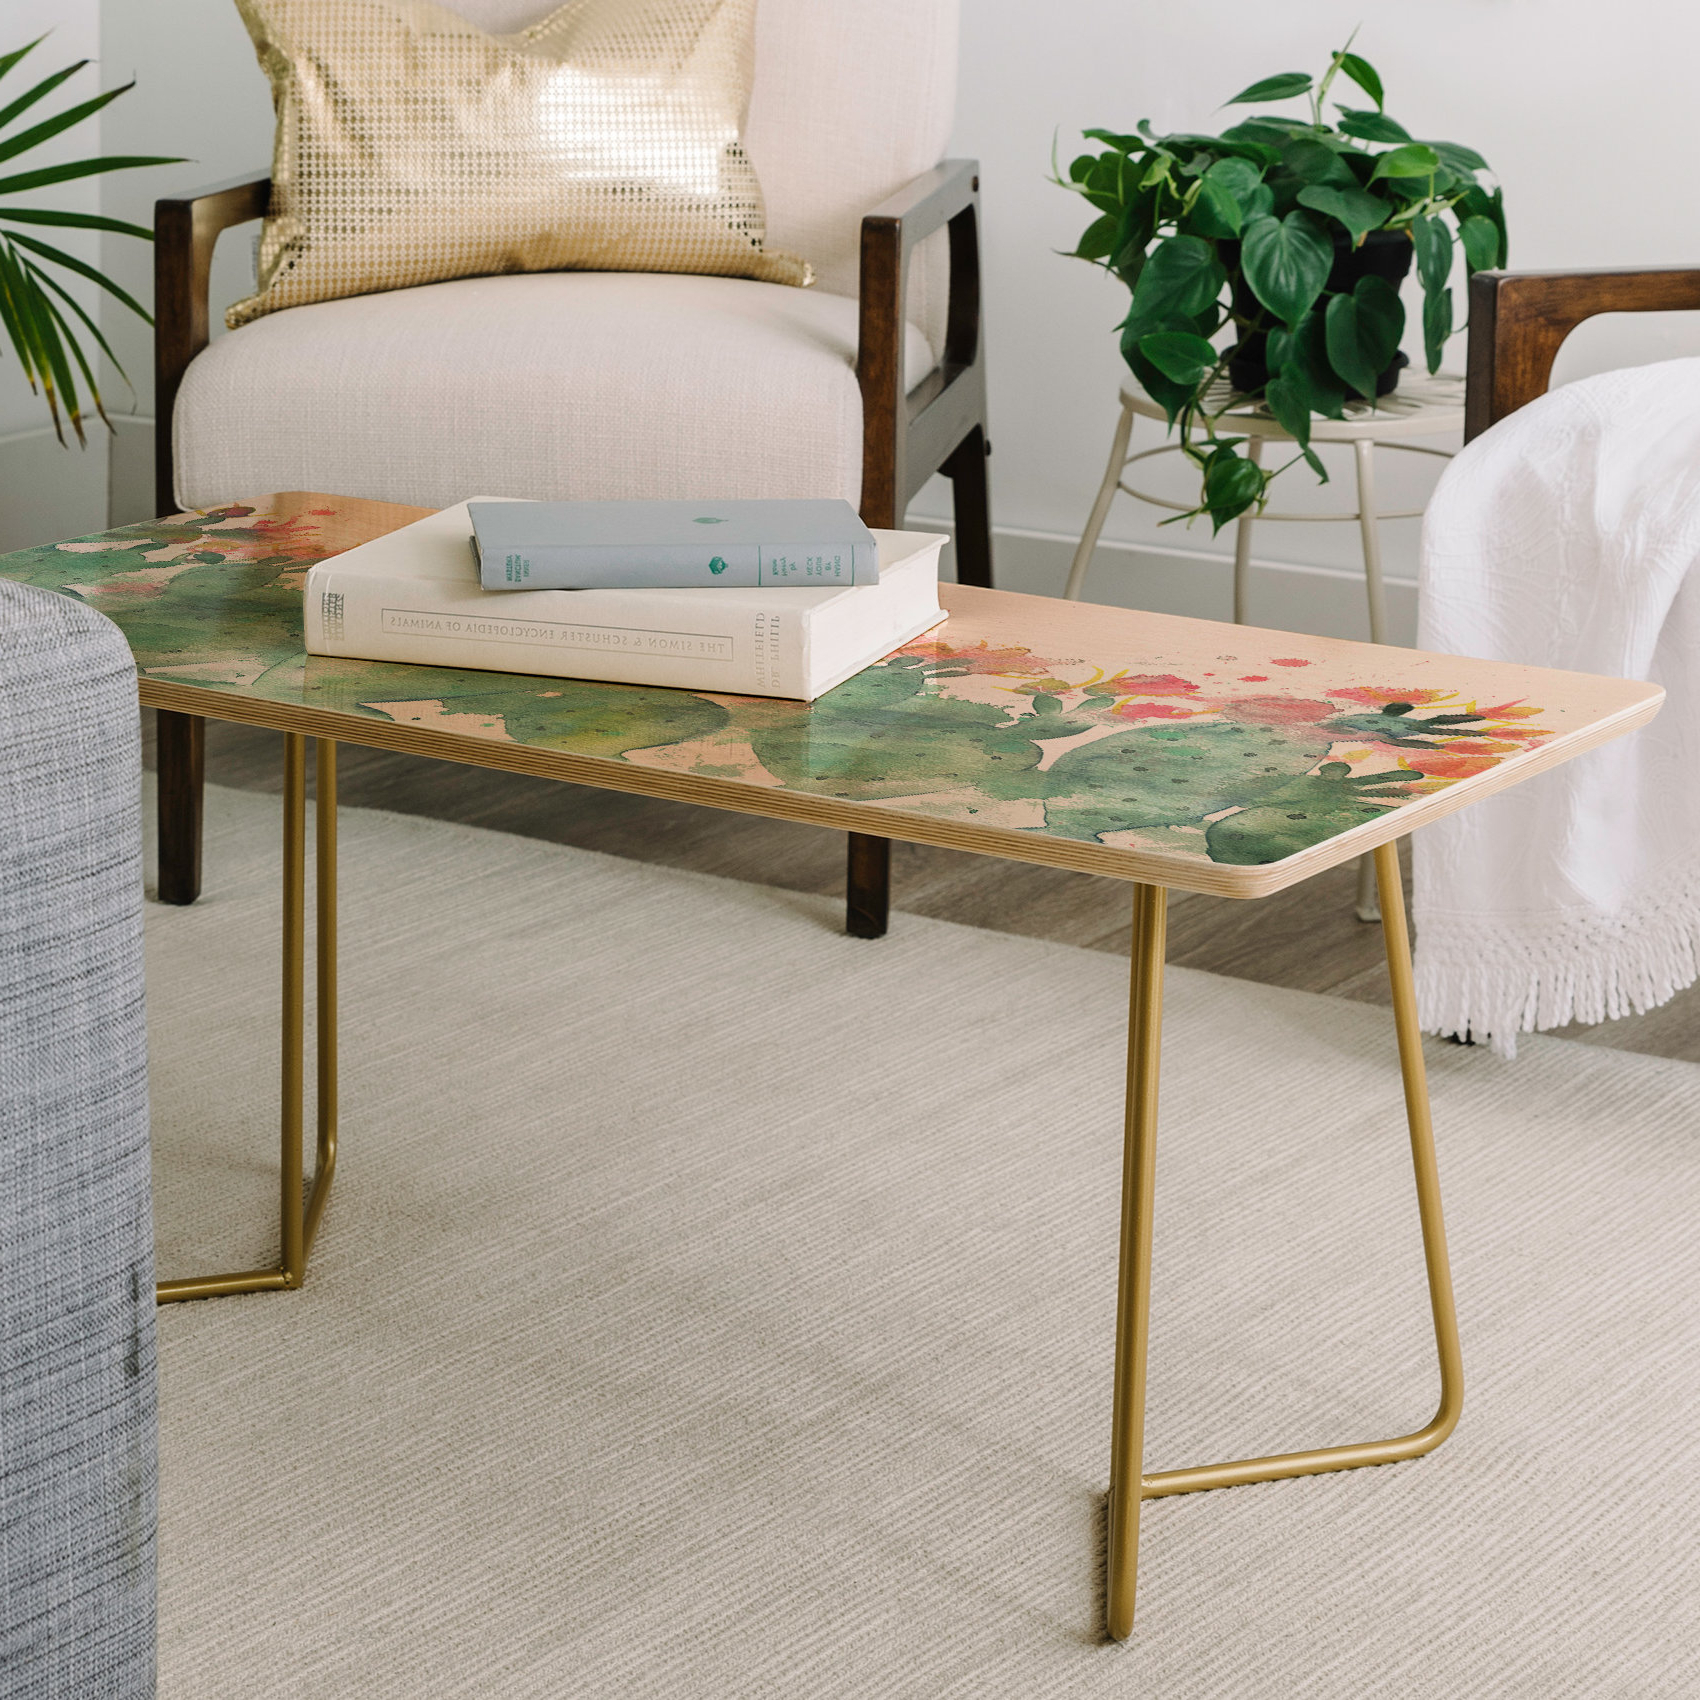 Widely Used East Urban Home Dash And Ash Messy Cactus Coffee Table (View 6 of 20)